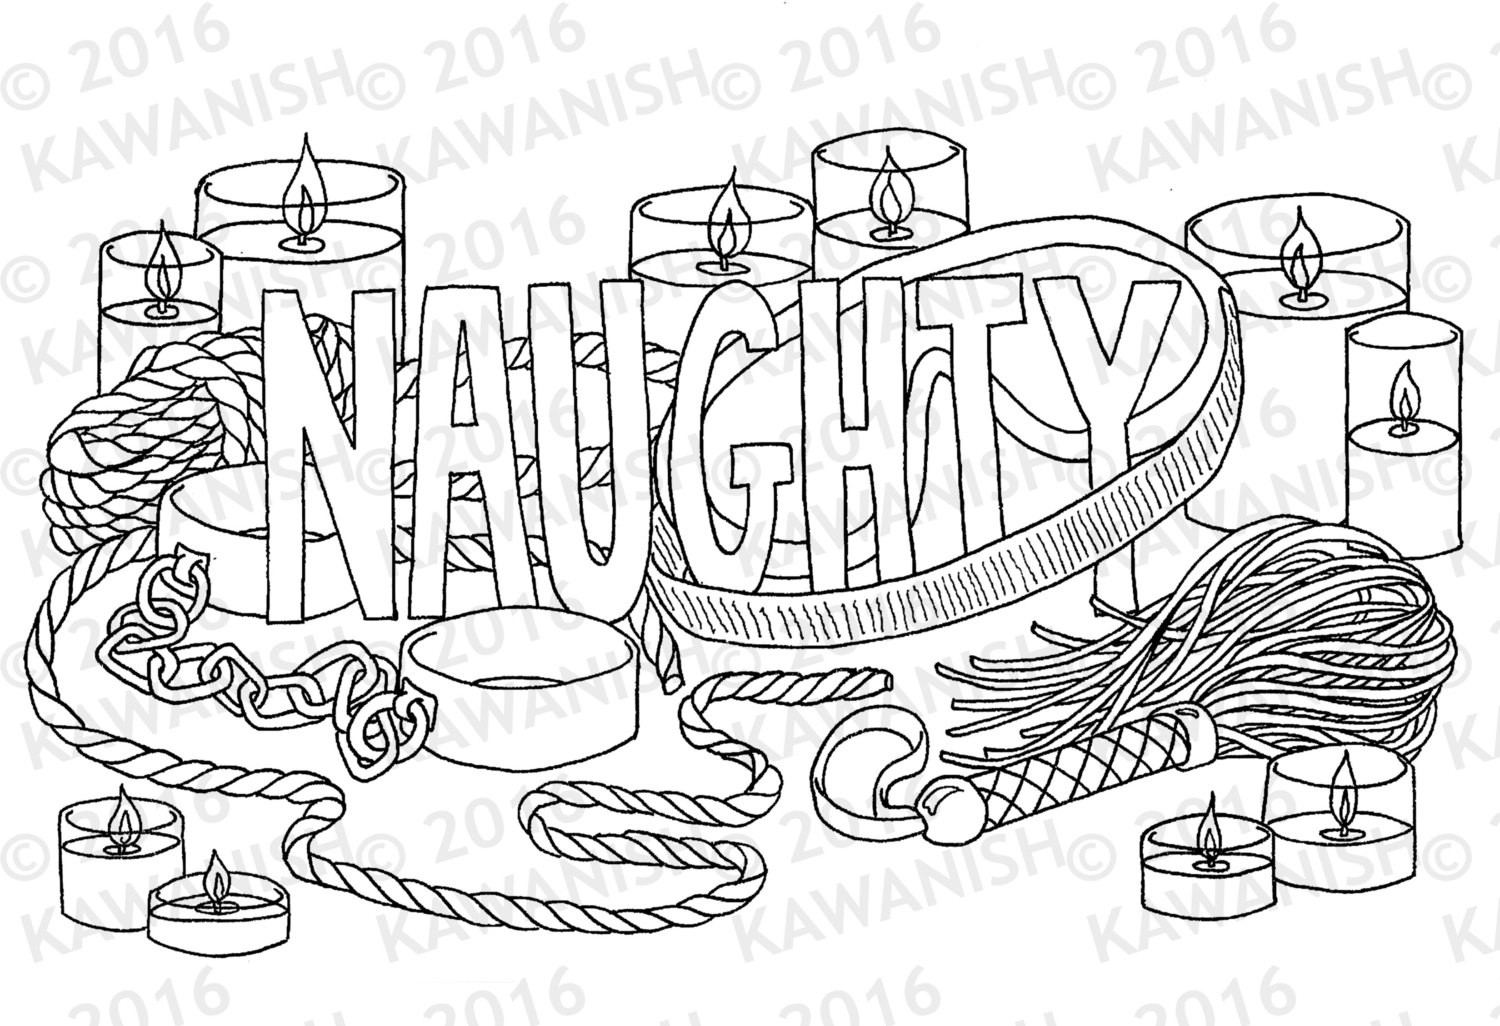 Naughty Adult Coloring Books  naughty kinky BDSM adult coloring page wall art